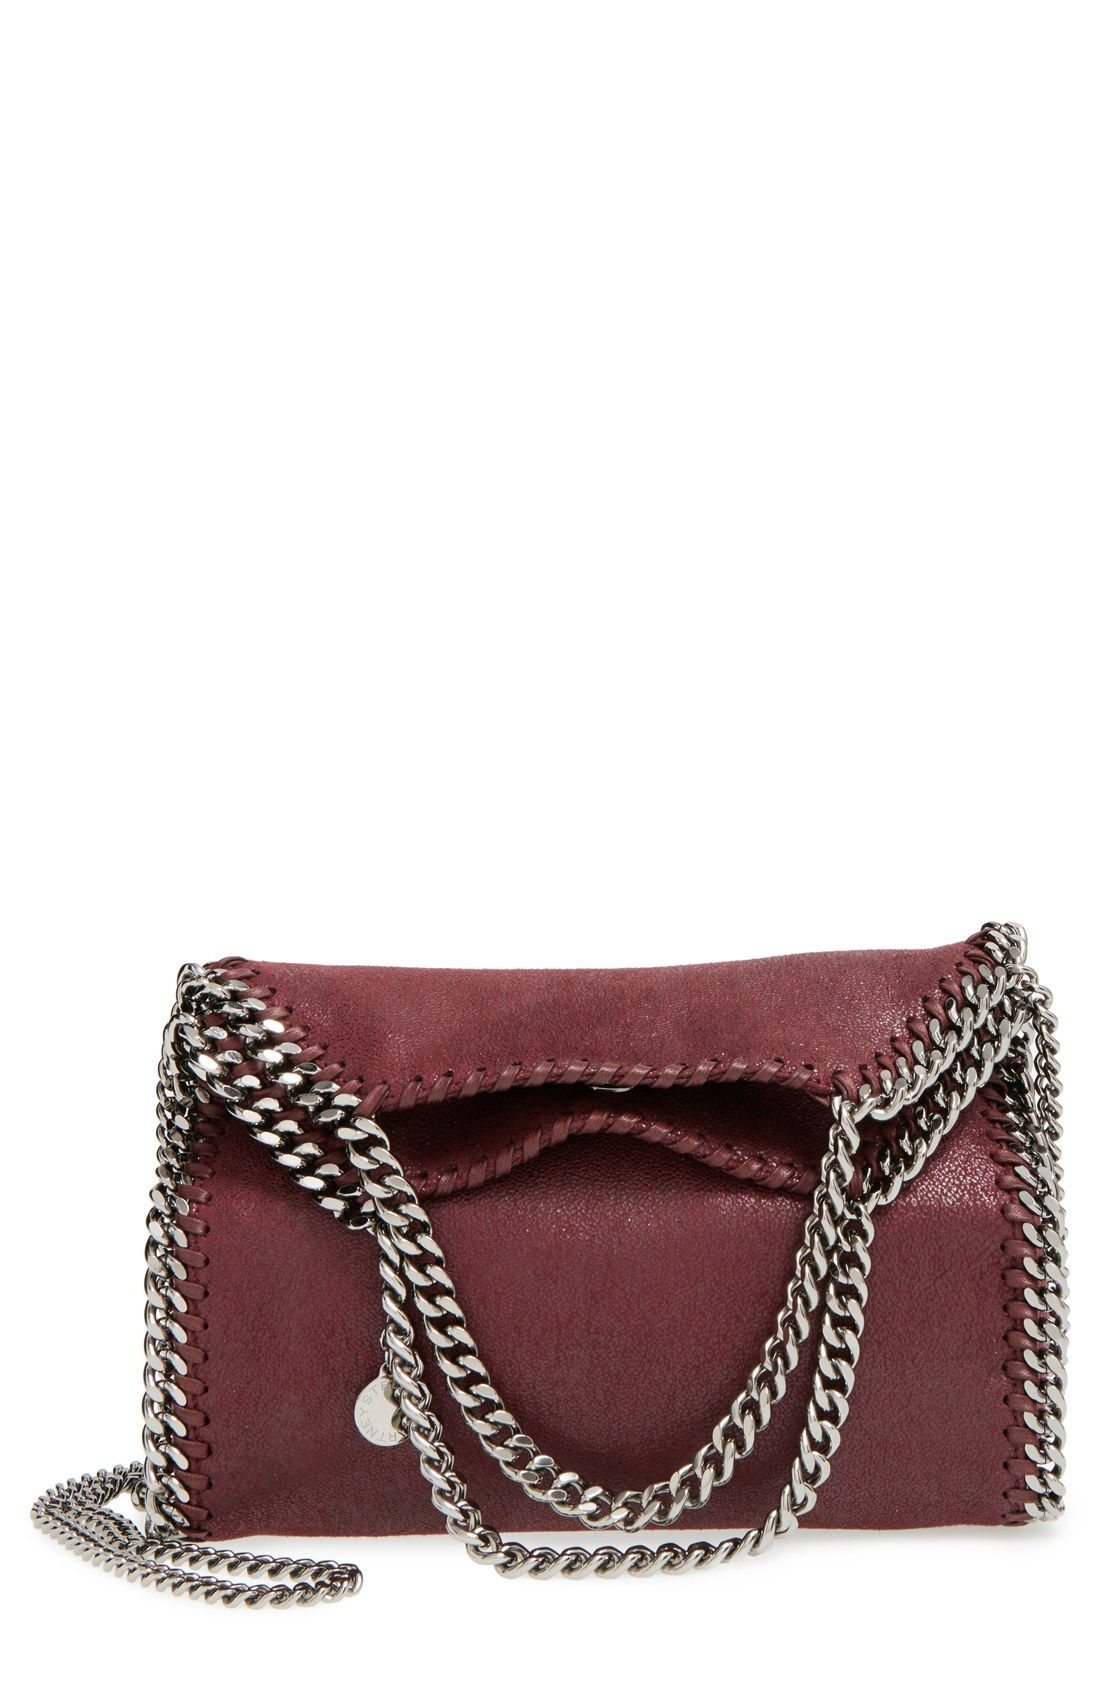 Stella McCartney  Falabella - Mini  Shaggy Deer Tote Stella Bag 45b62ef8462e7